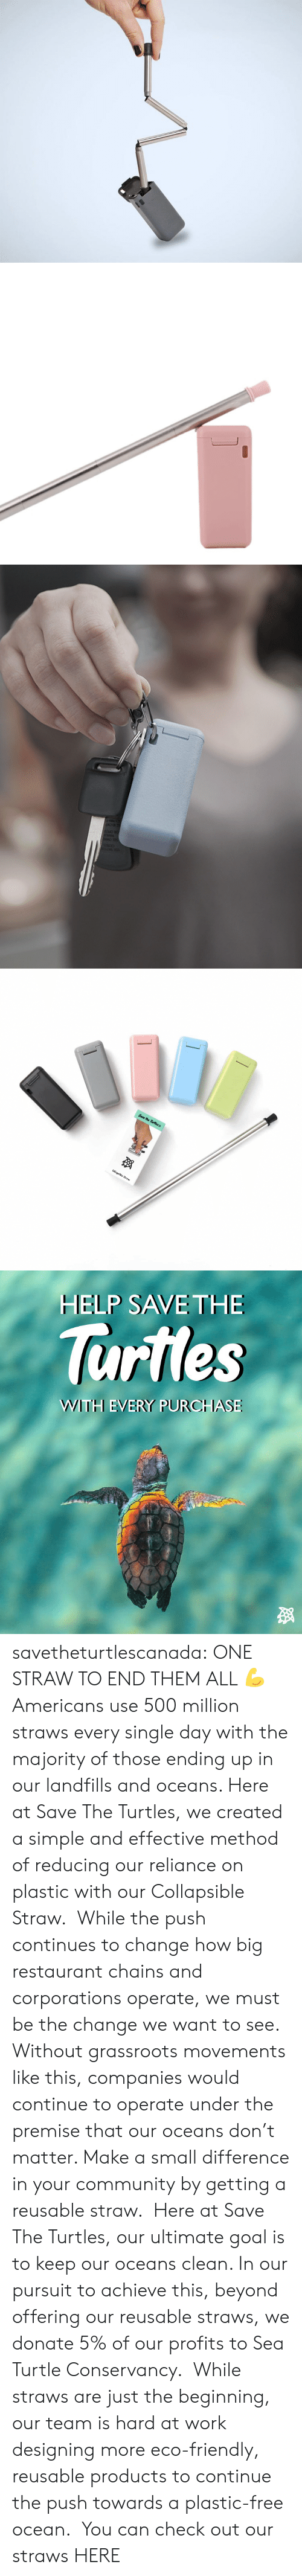 Community, Tumblr, and Work: Collapsible Strow   HELP SAVE THE  lurtles  WWITH EVERY PURCHASE savetheturtlescanada: ONE STRAW TO END THEM ALL 💪 Americans use 500 million straws every single day with the majority of those ending up in our landfills and oceans. Here at Save The Turtles, we created a simple and effective method of reducing our reliance on plastic with our Collapsible Straw.  While the push continues to change how big restaurant chains and corporations operate, we must be the change we want to see. Without grassroots movements like this, companies would continue to operate under the premise that our oceans don't matter. Make a small difference in your community by getting a reusable straw.  Here at Save The Turtles, our ultimate goal is to keep our oceans clean. In our pursuit to achieve this, beyond offering our reusable straws, we donate 5% of our profits to Sea Turtle Conservancy.  While straws are just the beginning, our team is hard at work designing more eco-friendly, reusable products to continue the push towards a plastic-free ocean.  You can check out our straws HERE